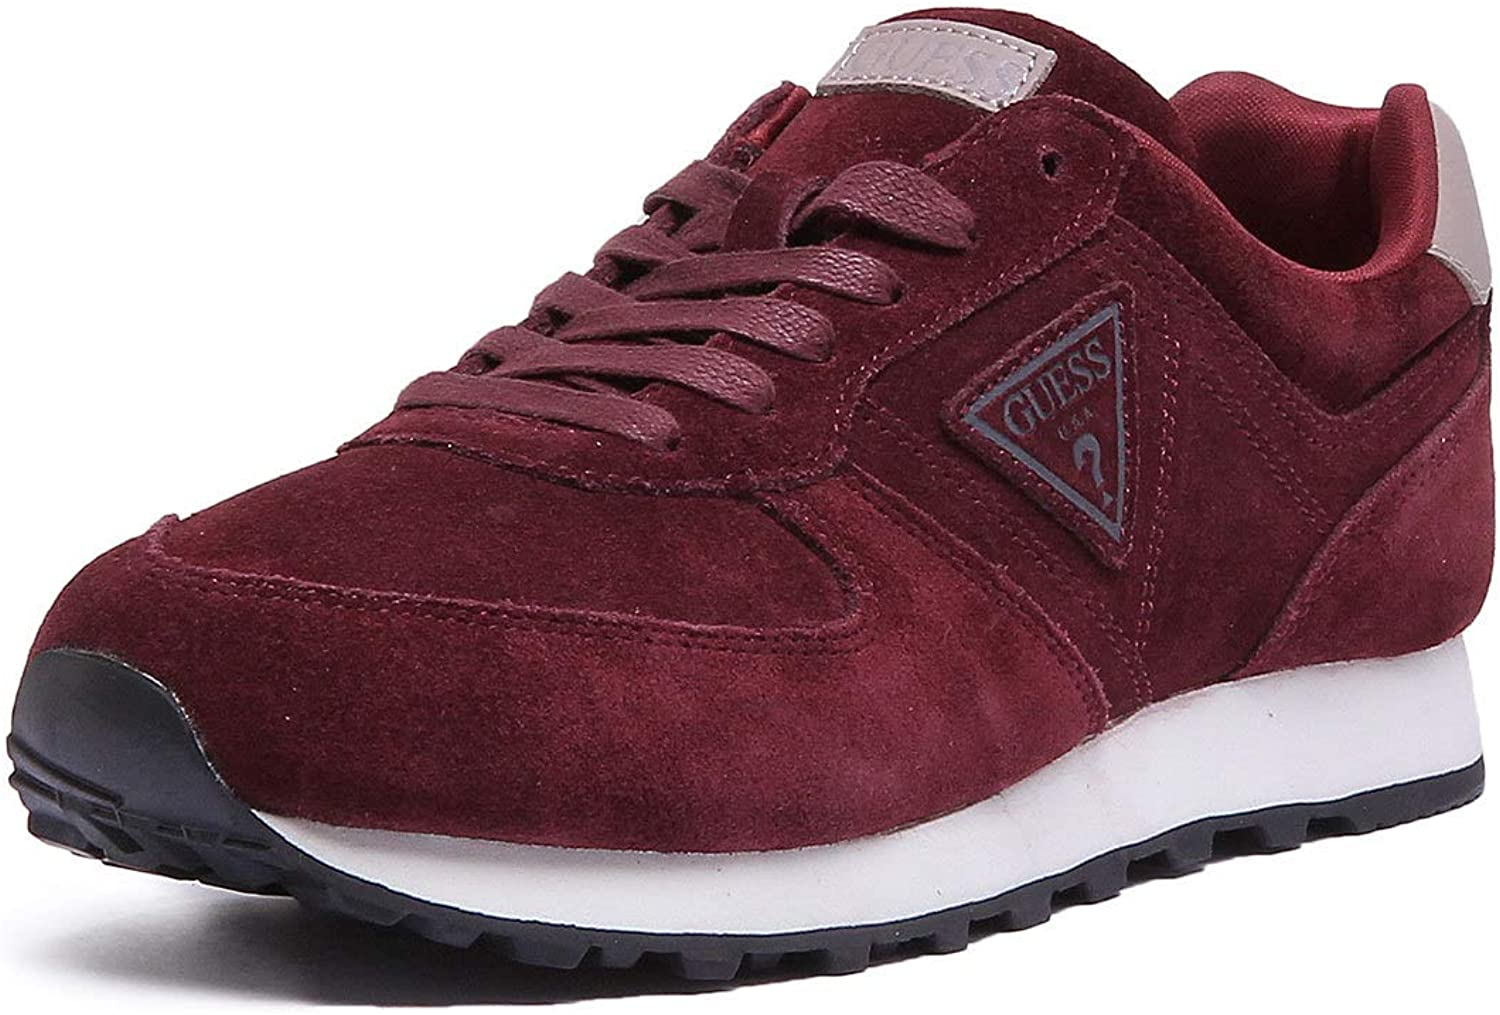 GUESS Charlie Trainers in Burgundy